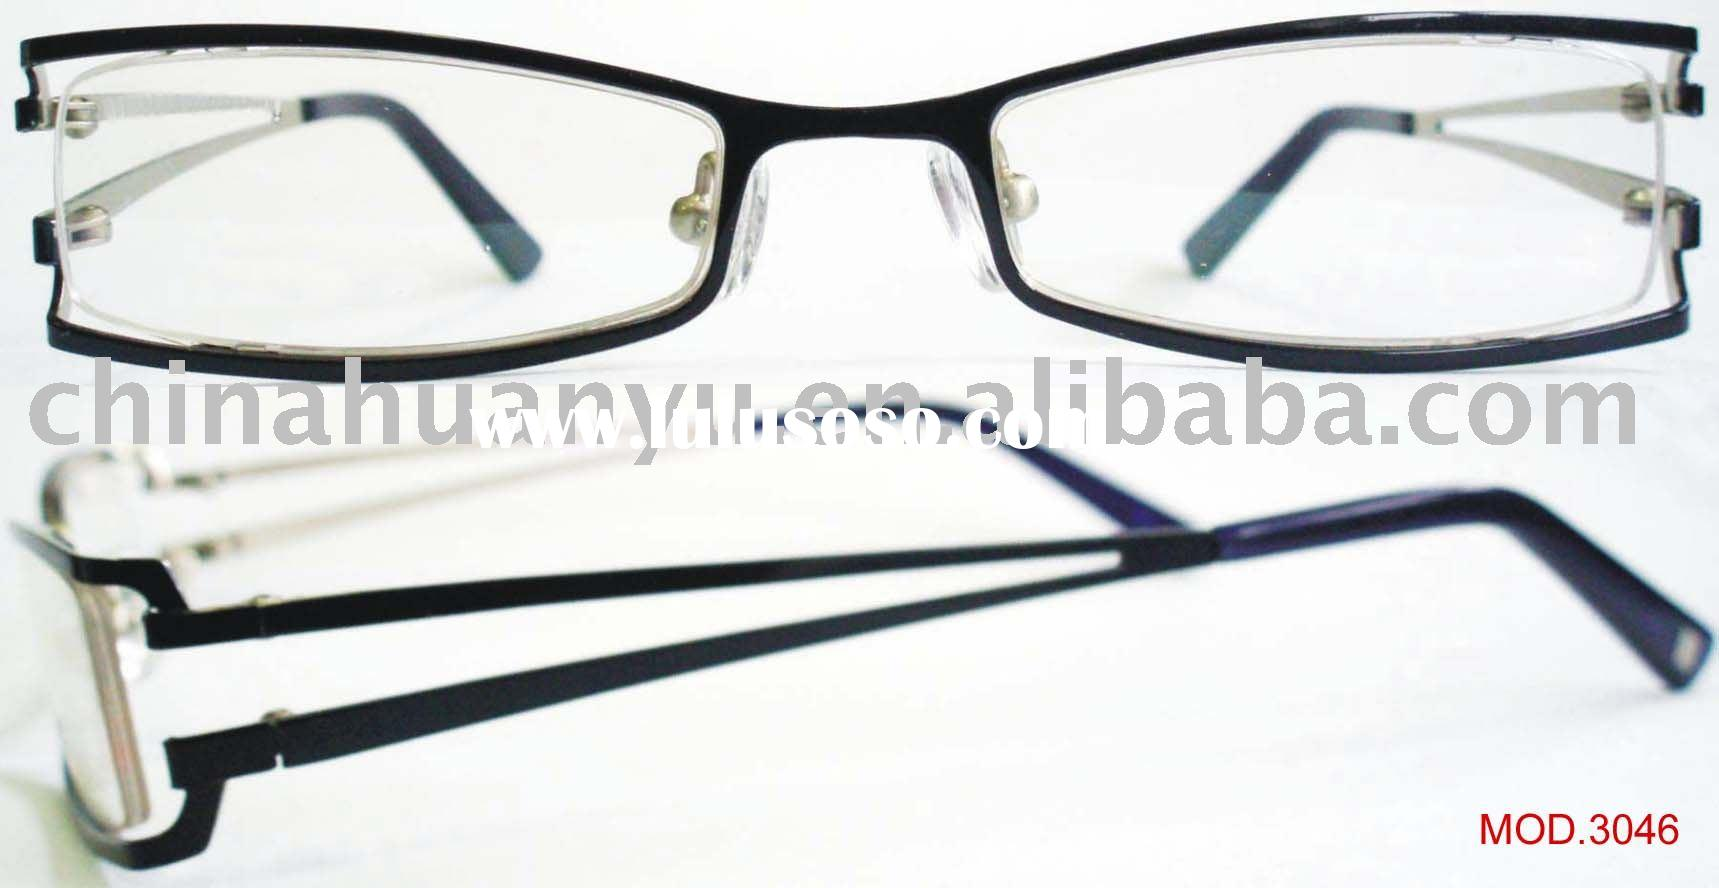 Glasses Frames Upload Picture : Metal picture frames wholesale